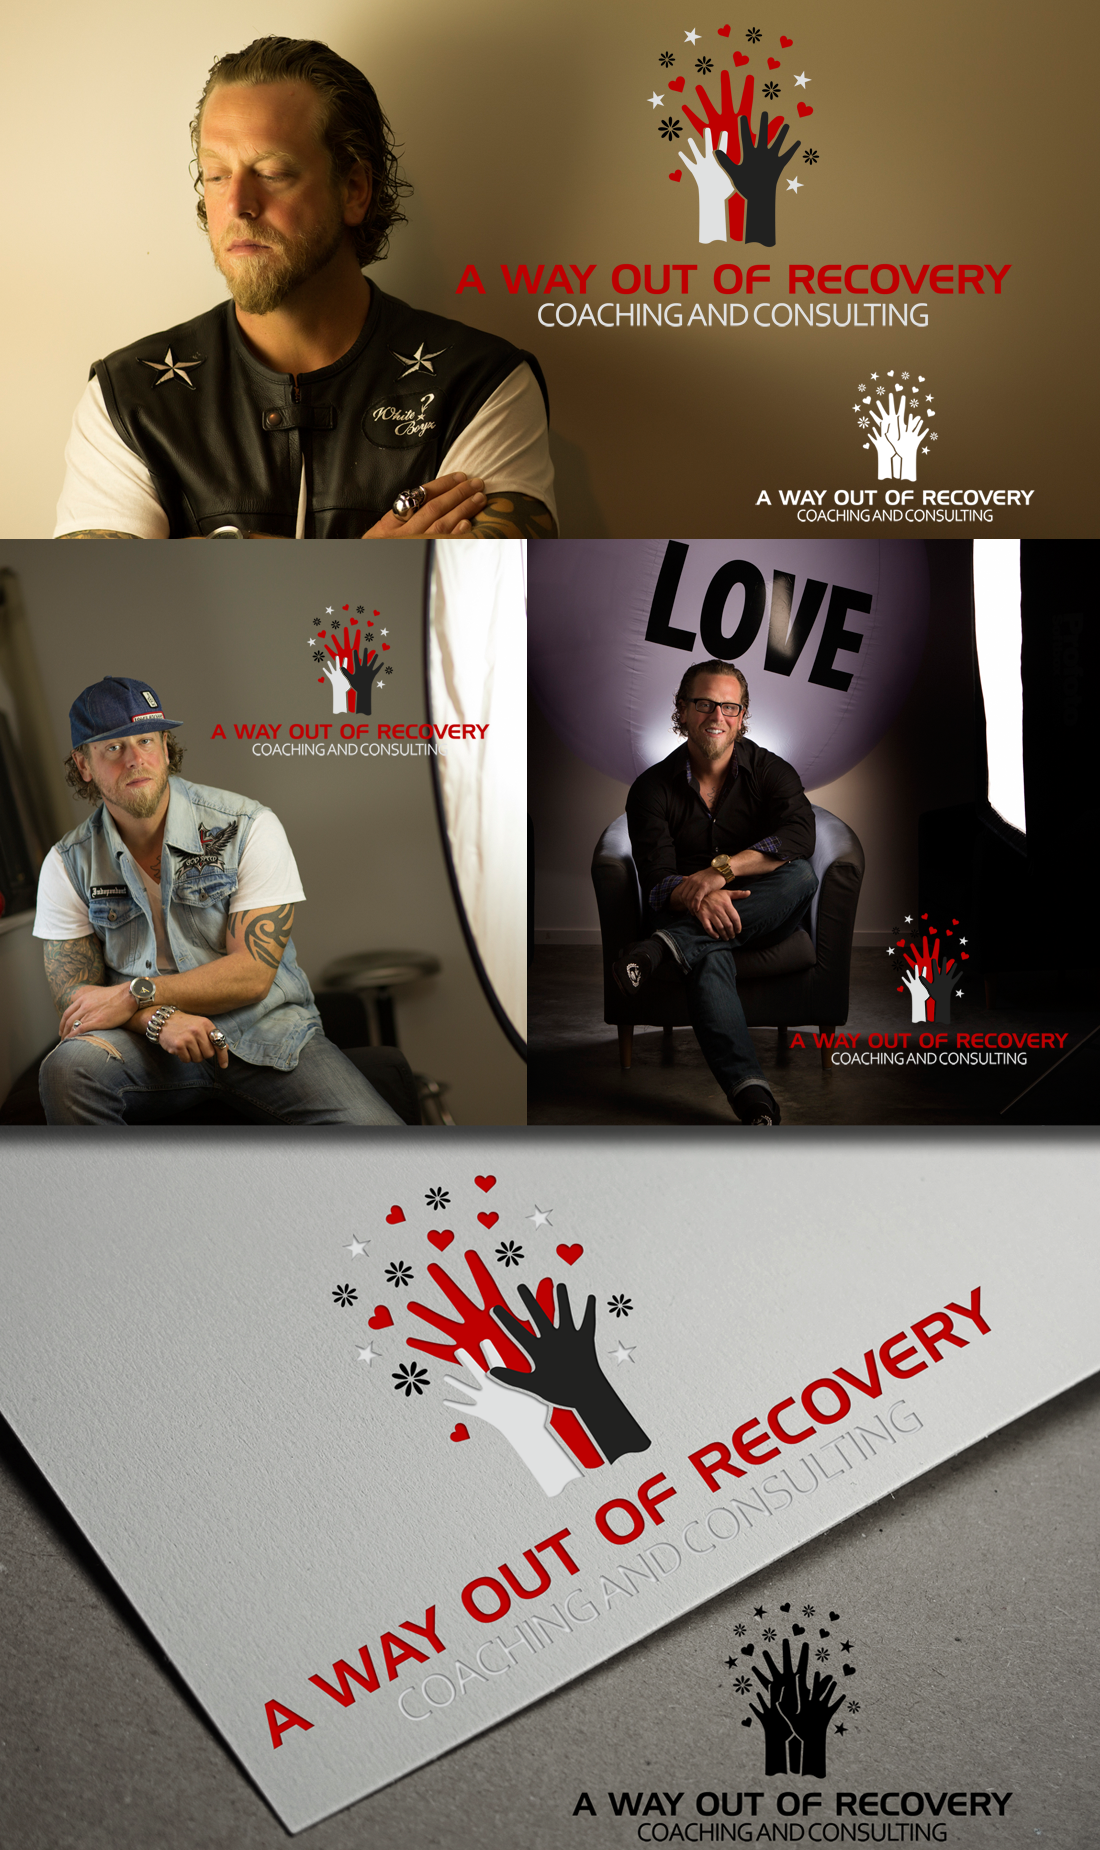 Logo Design by Robert Turla - Entry No. 31 in the Logo Design Contest Inspiring Logo Design for A Way Out Recovery Coaching & Consulting.